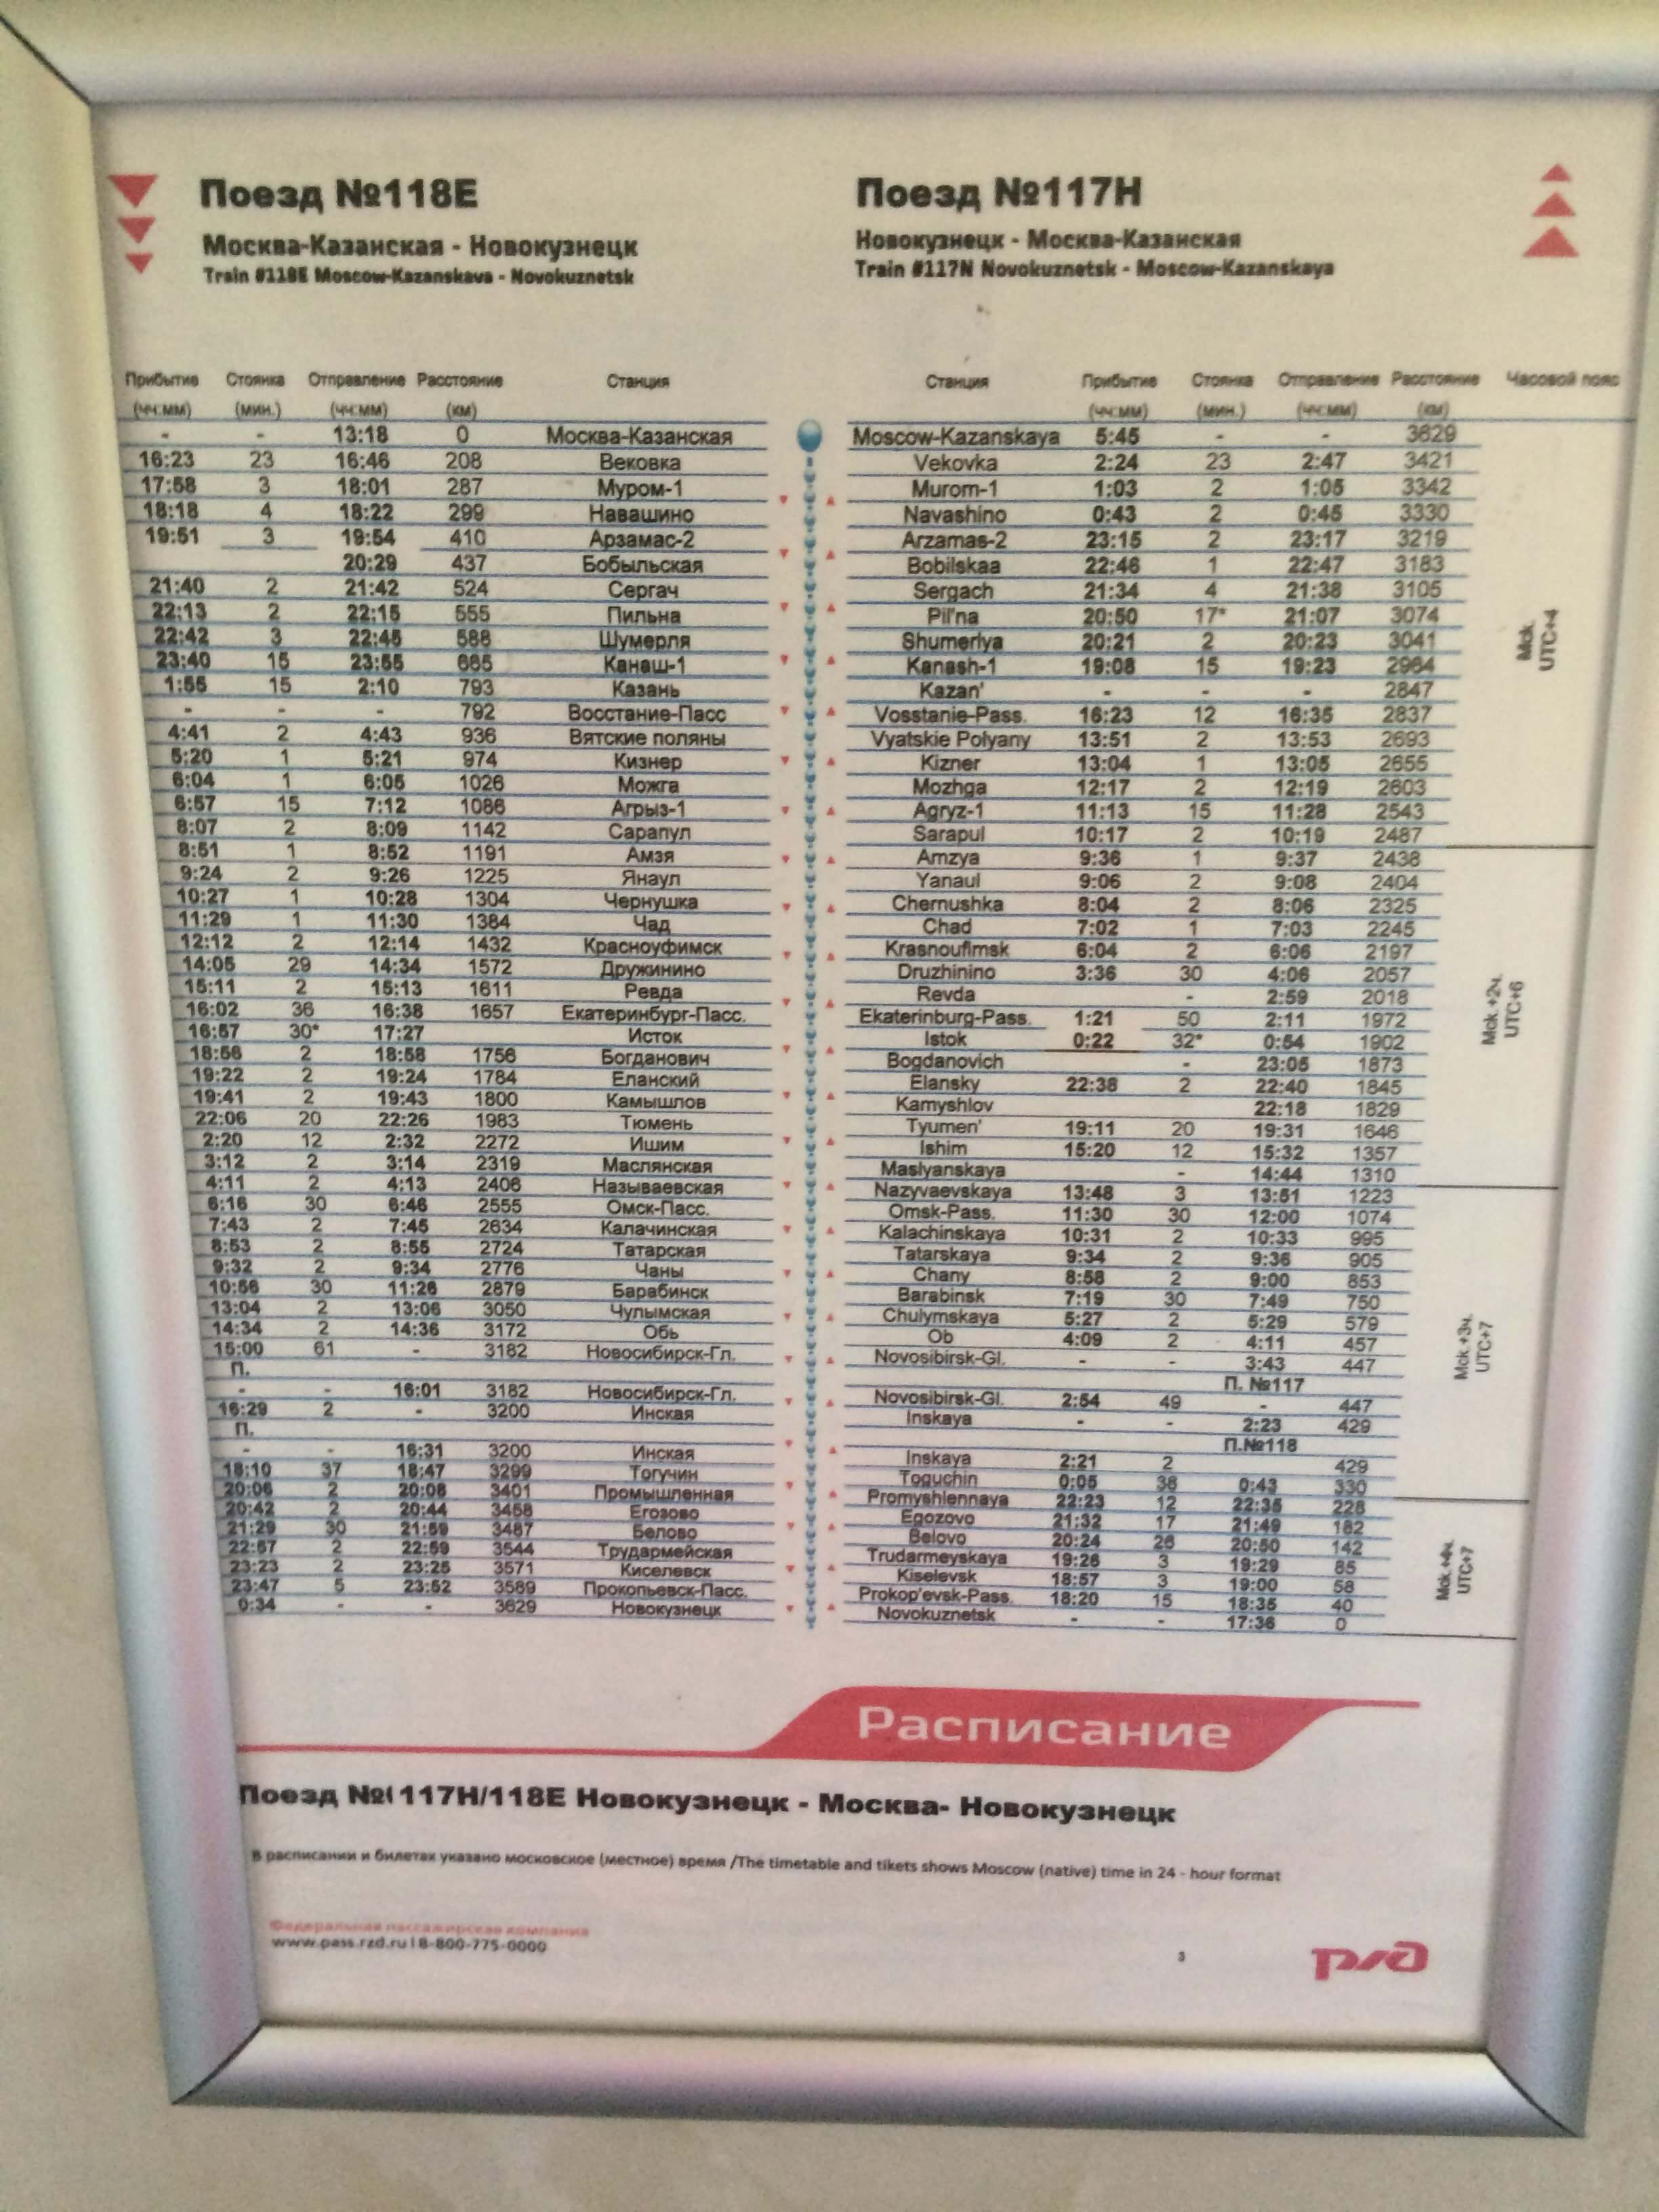 Example of the train schedule